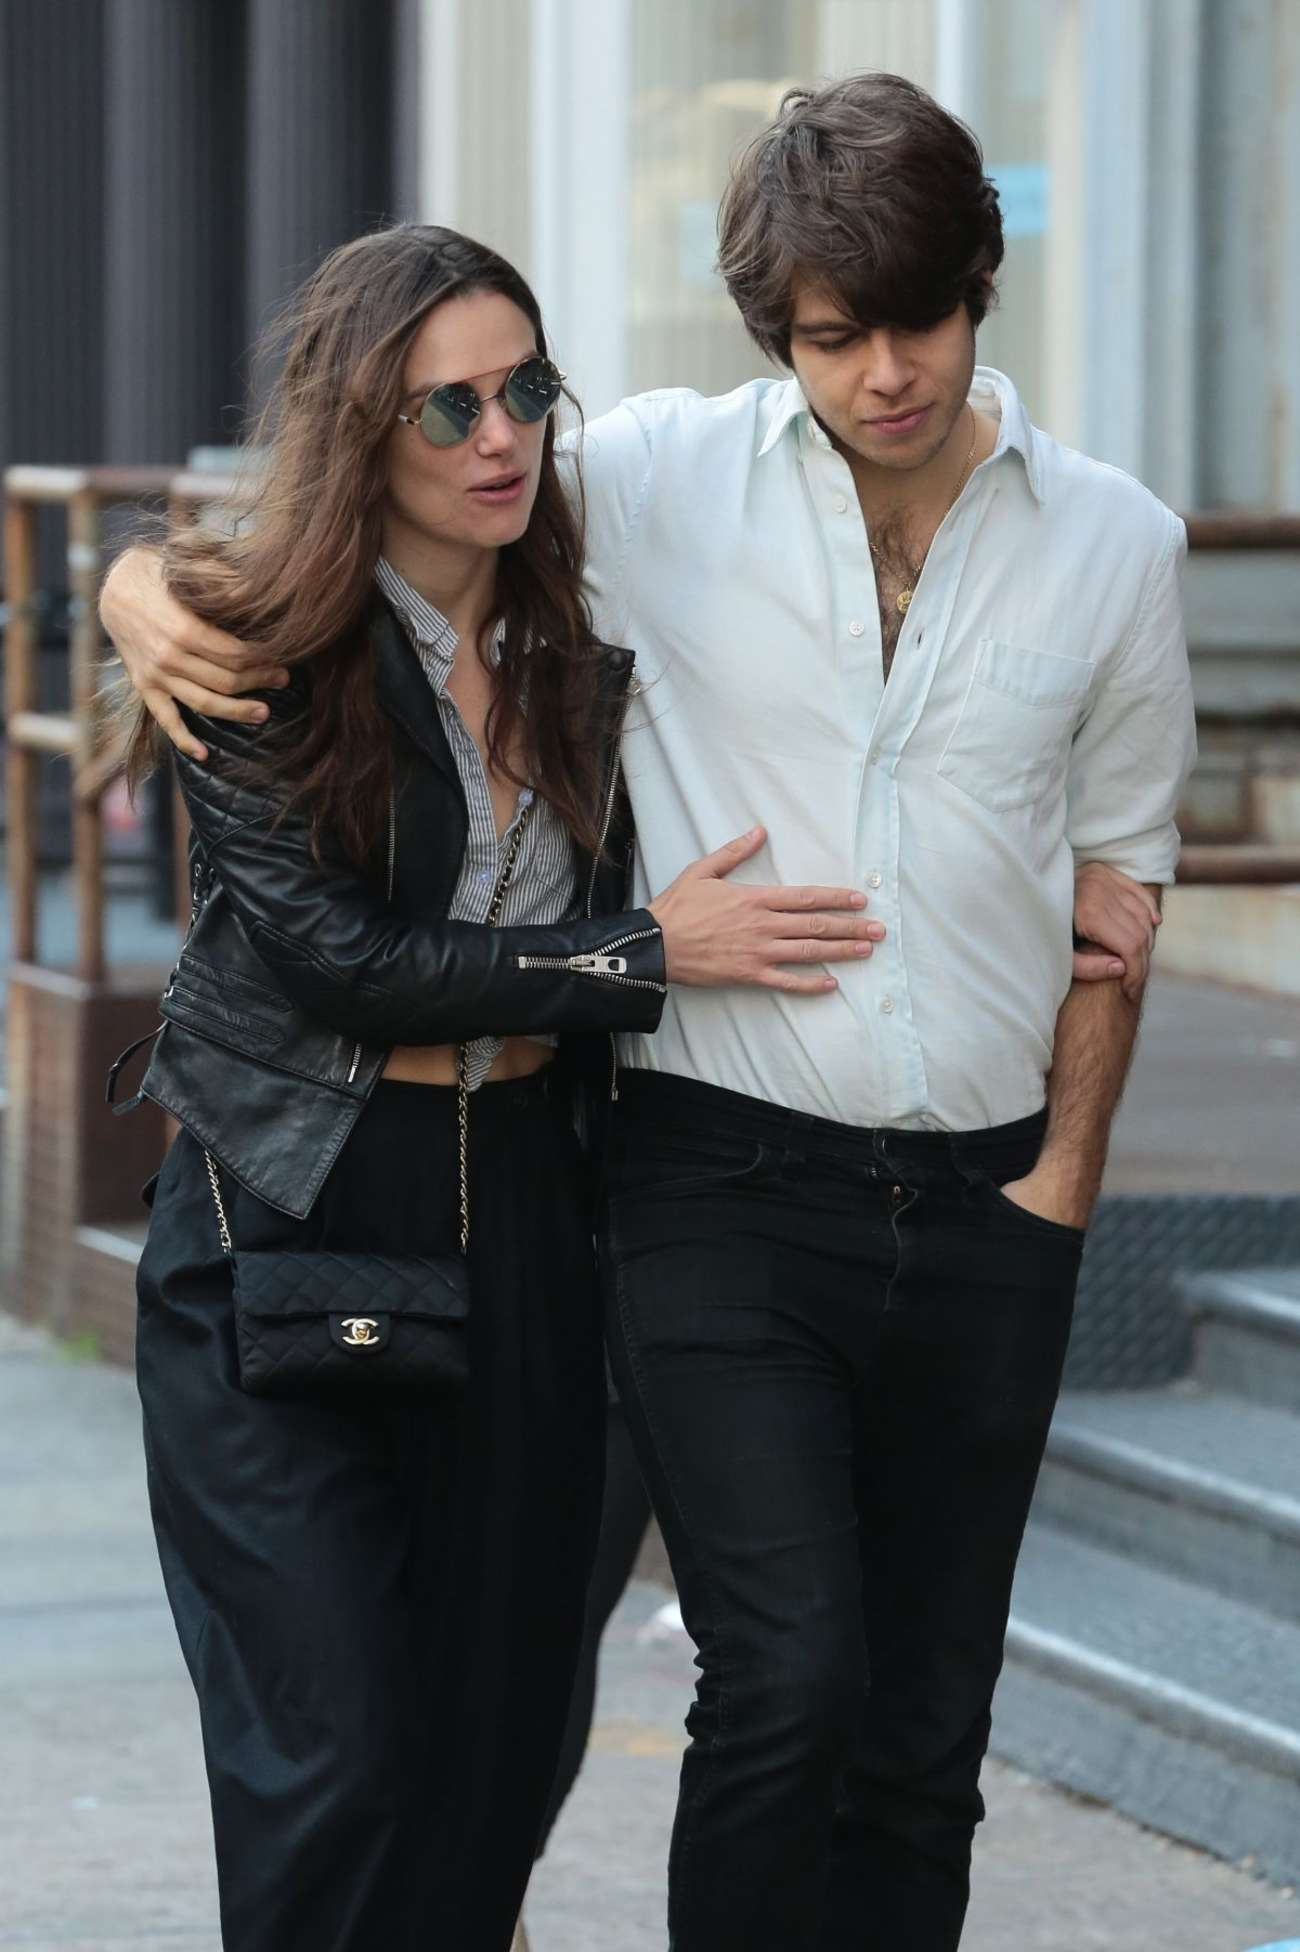 Keira Knightley with James Righton Out in New York